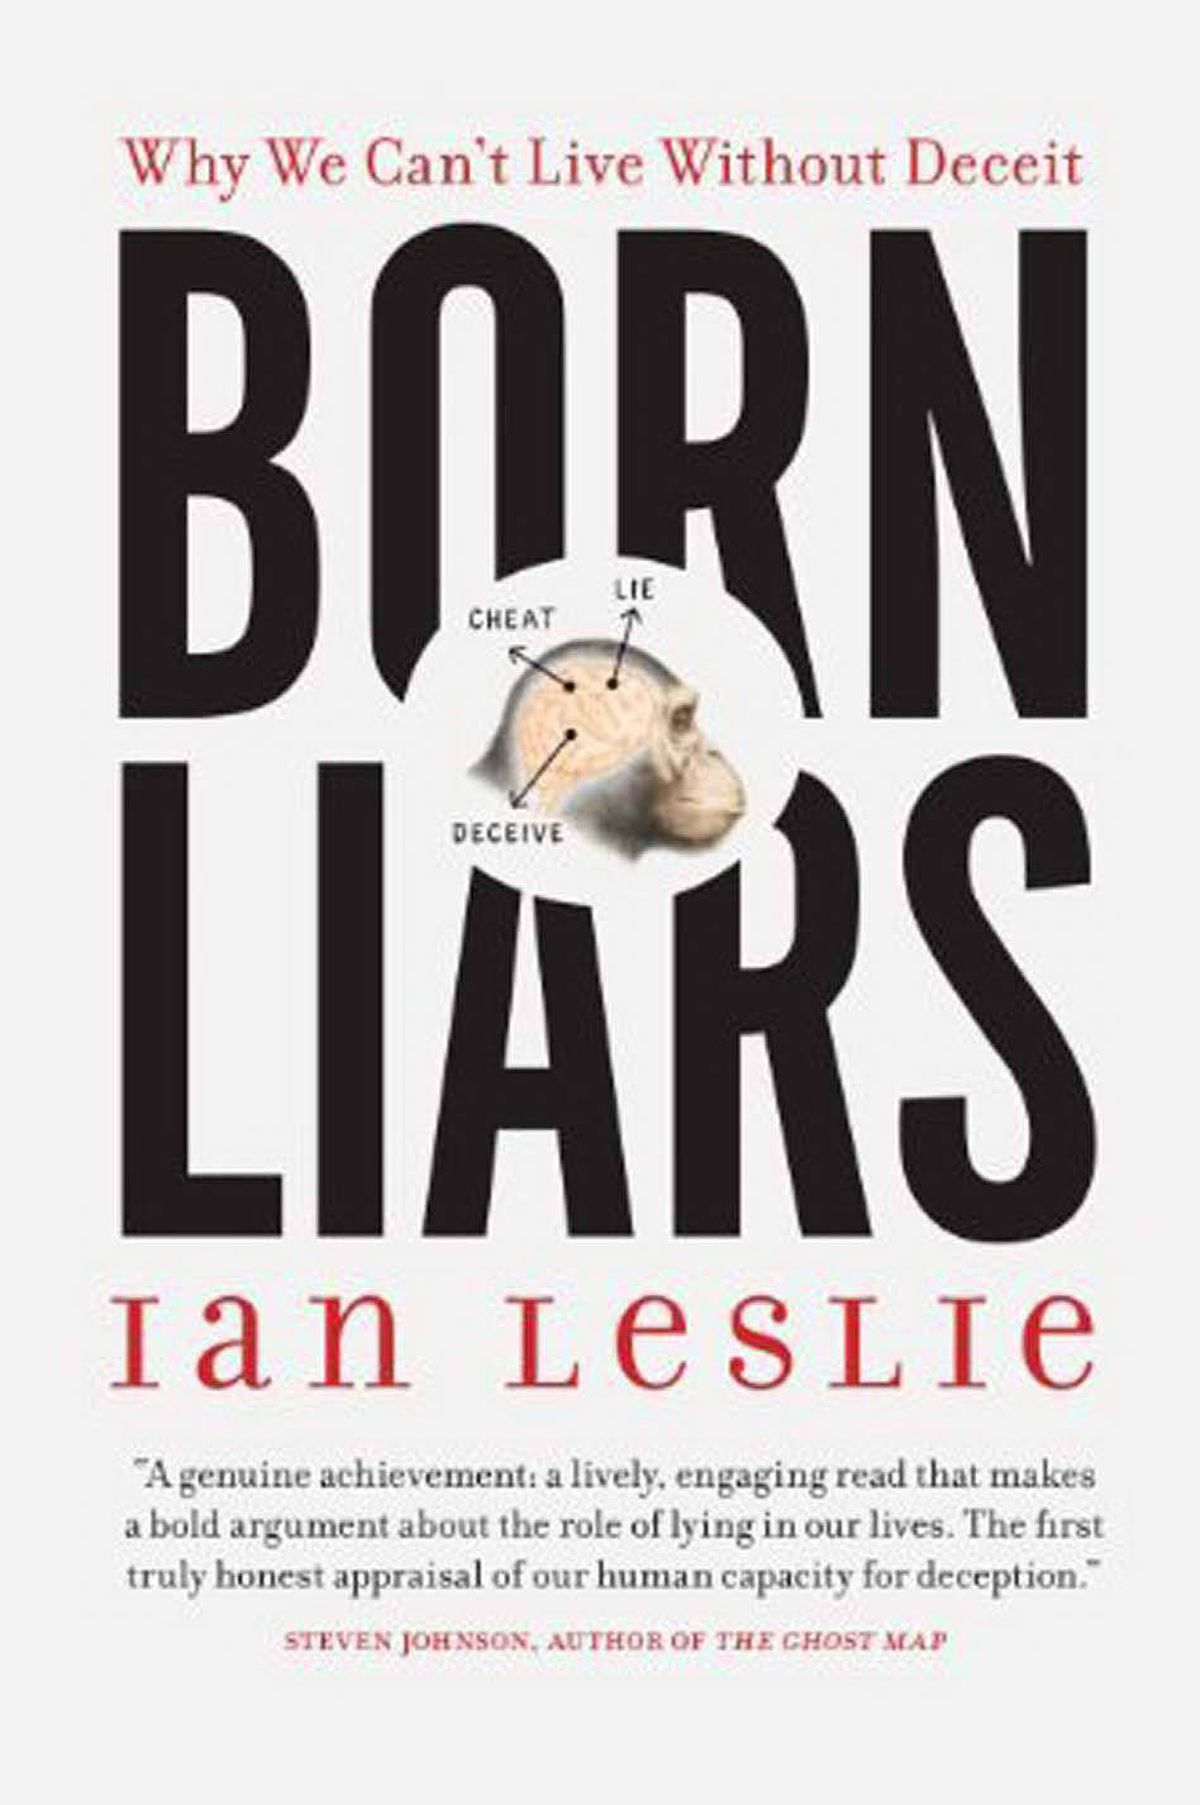 BORN LIARS Why We Can't Live Without Deceit By Ian Leslie (Anansi) In this persuasive and wide-ranging book about the useful role of deception, Leslie argues that lies are not just the refuge of the cowardly, the Machiavellian or the too-kind. Not coming entirely clean with others people is part of being a social animal. Leslie brings intelligence and a wealth of thought-provoking research to his topic. – Marni Jackson